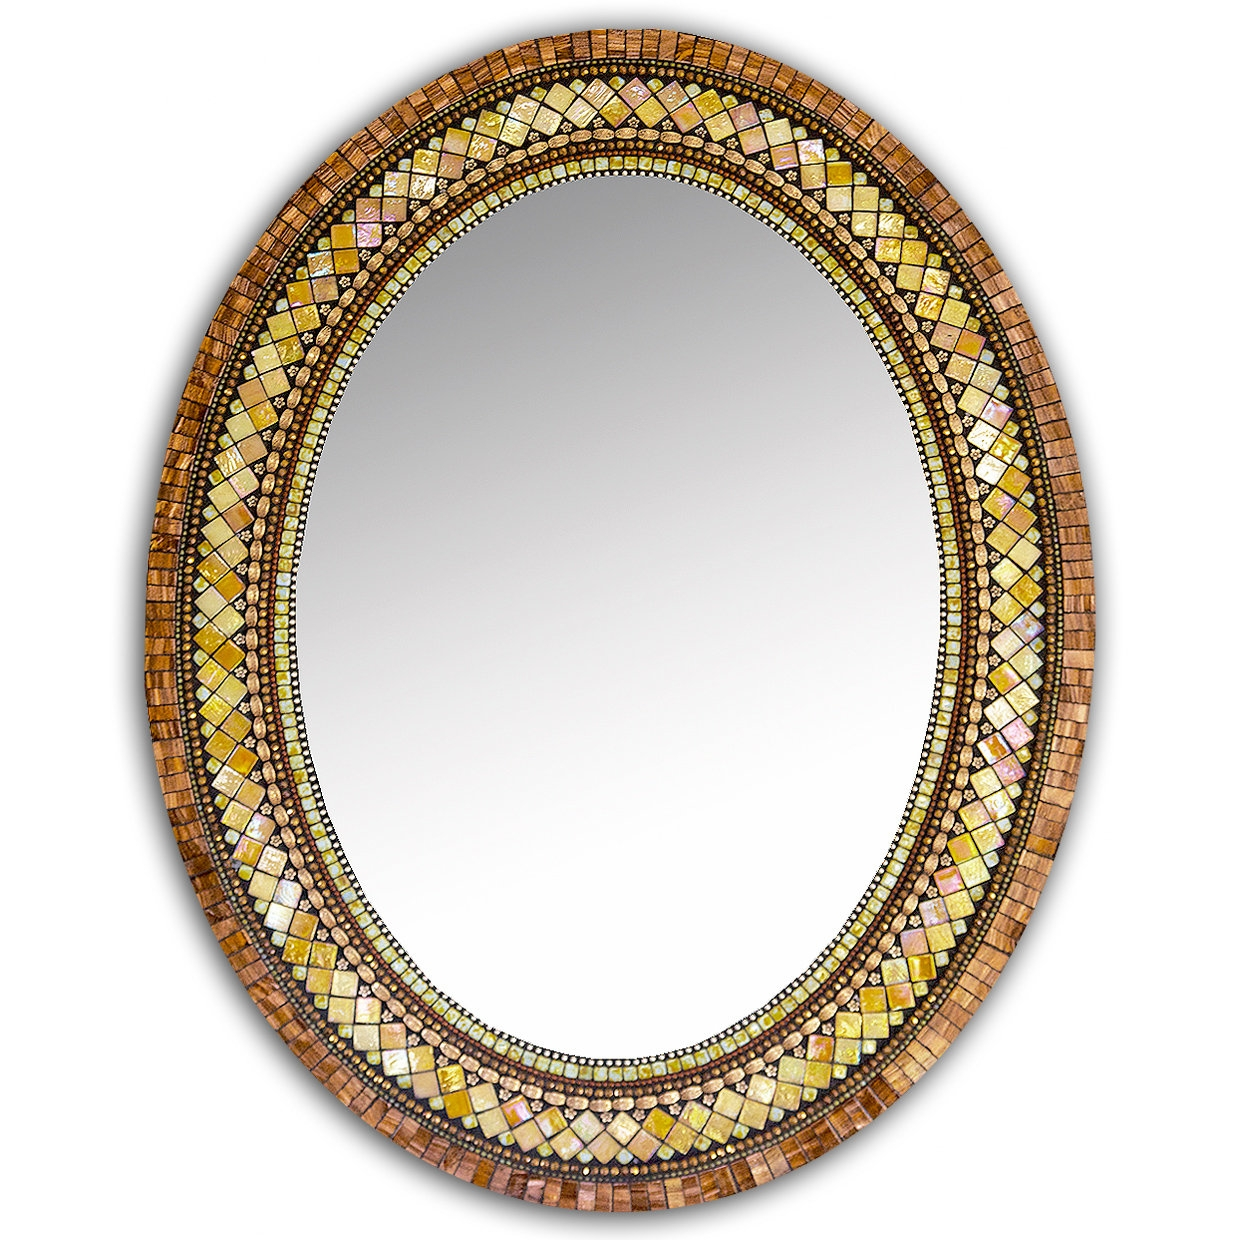 Golden Bronze Mosaic Mirror Angie Heinrich Mosaic Mirror For Mosaic Mirrors For Sale (Image 5 of 15)